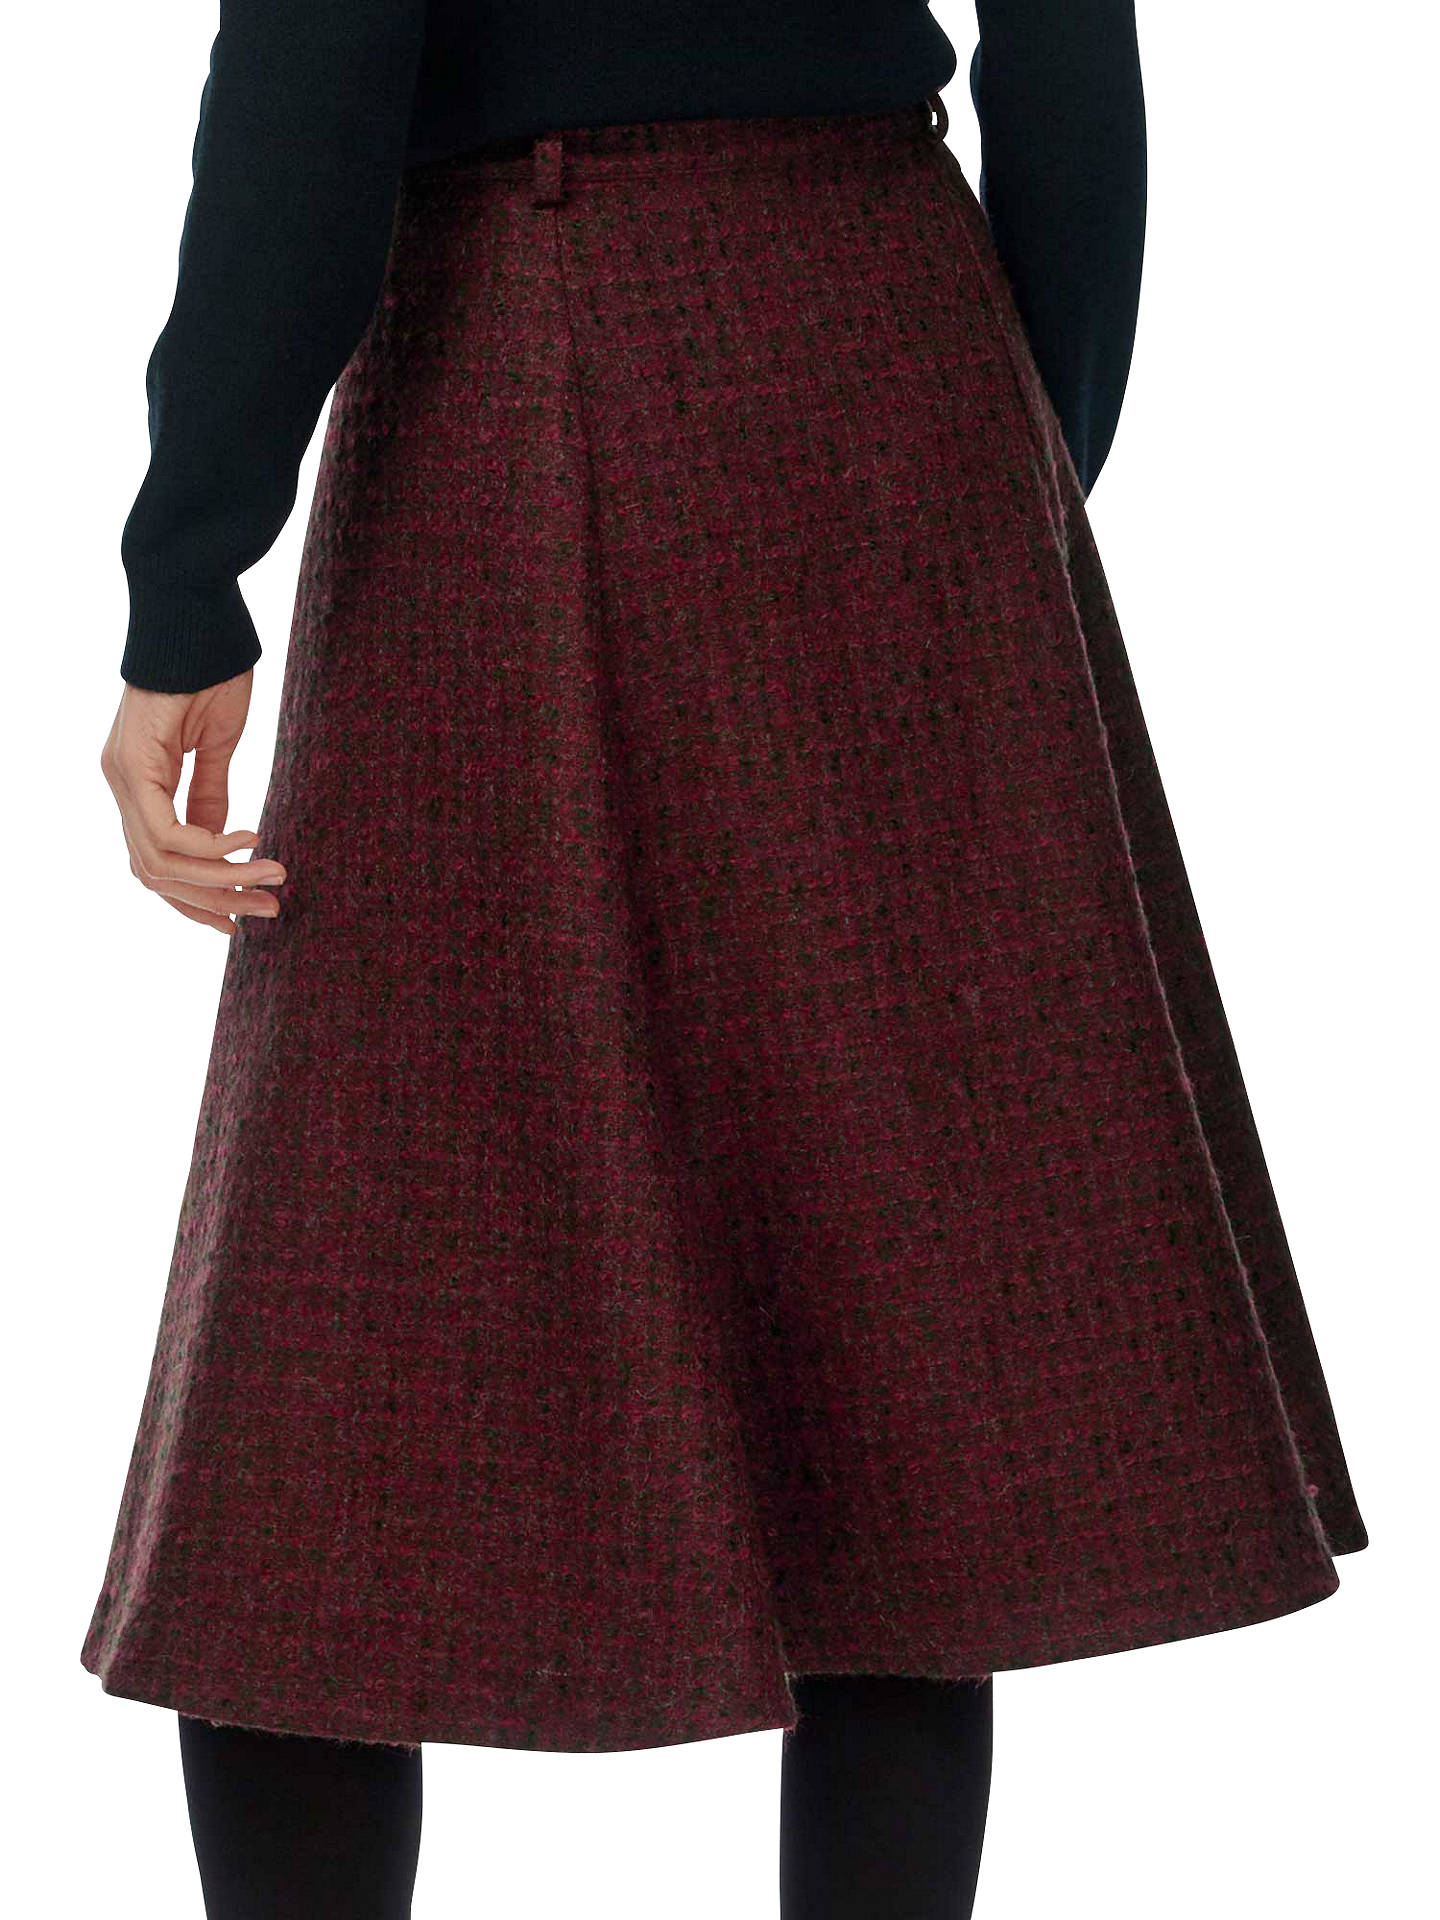 BuyBrora Textured Wool Skirt, Auburn, 6 Online at johnlewis.com